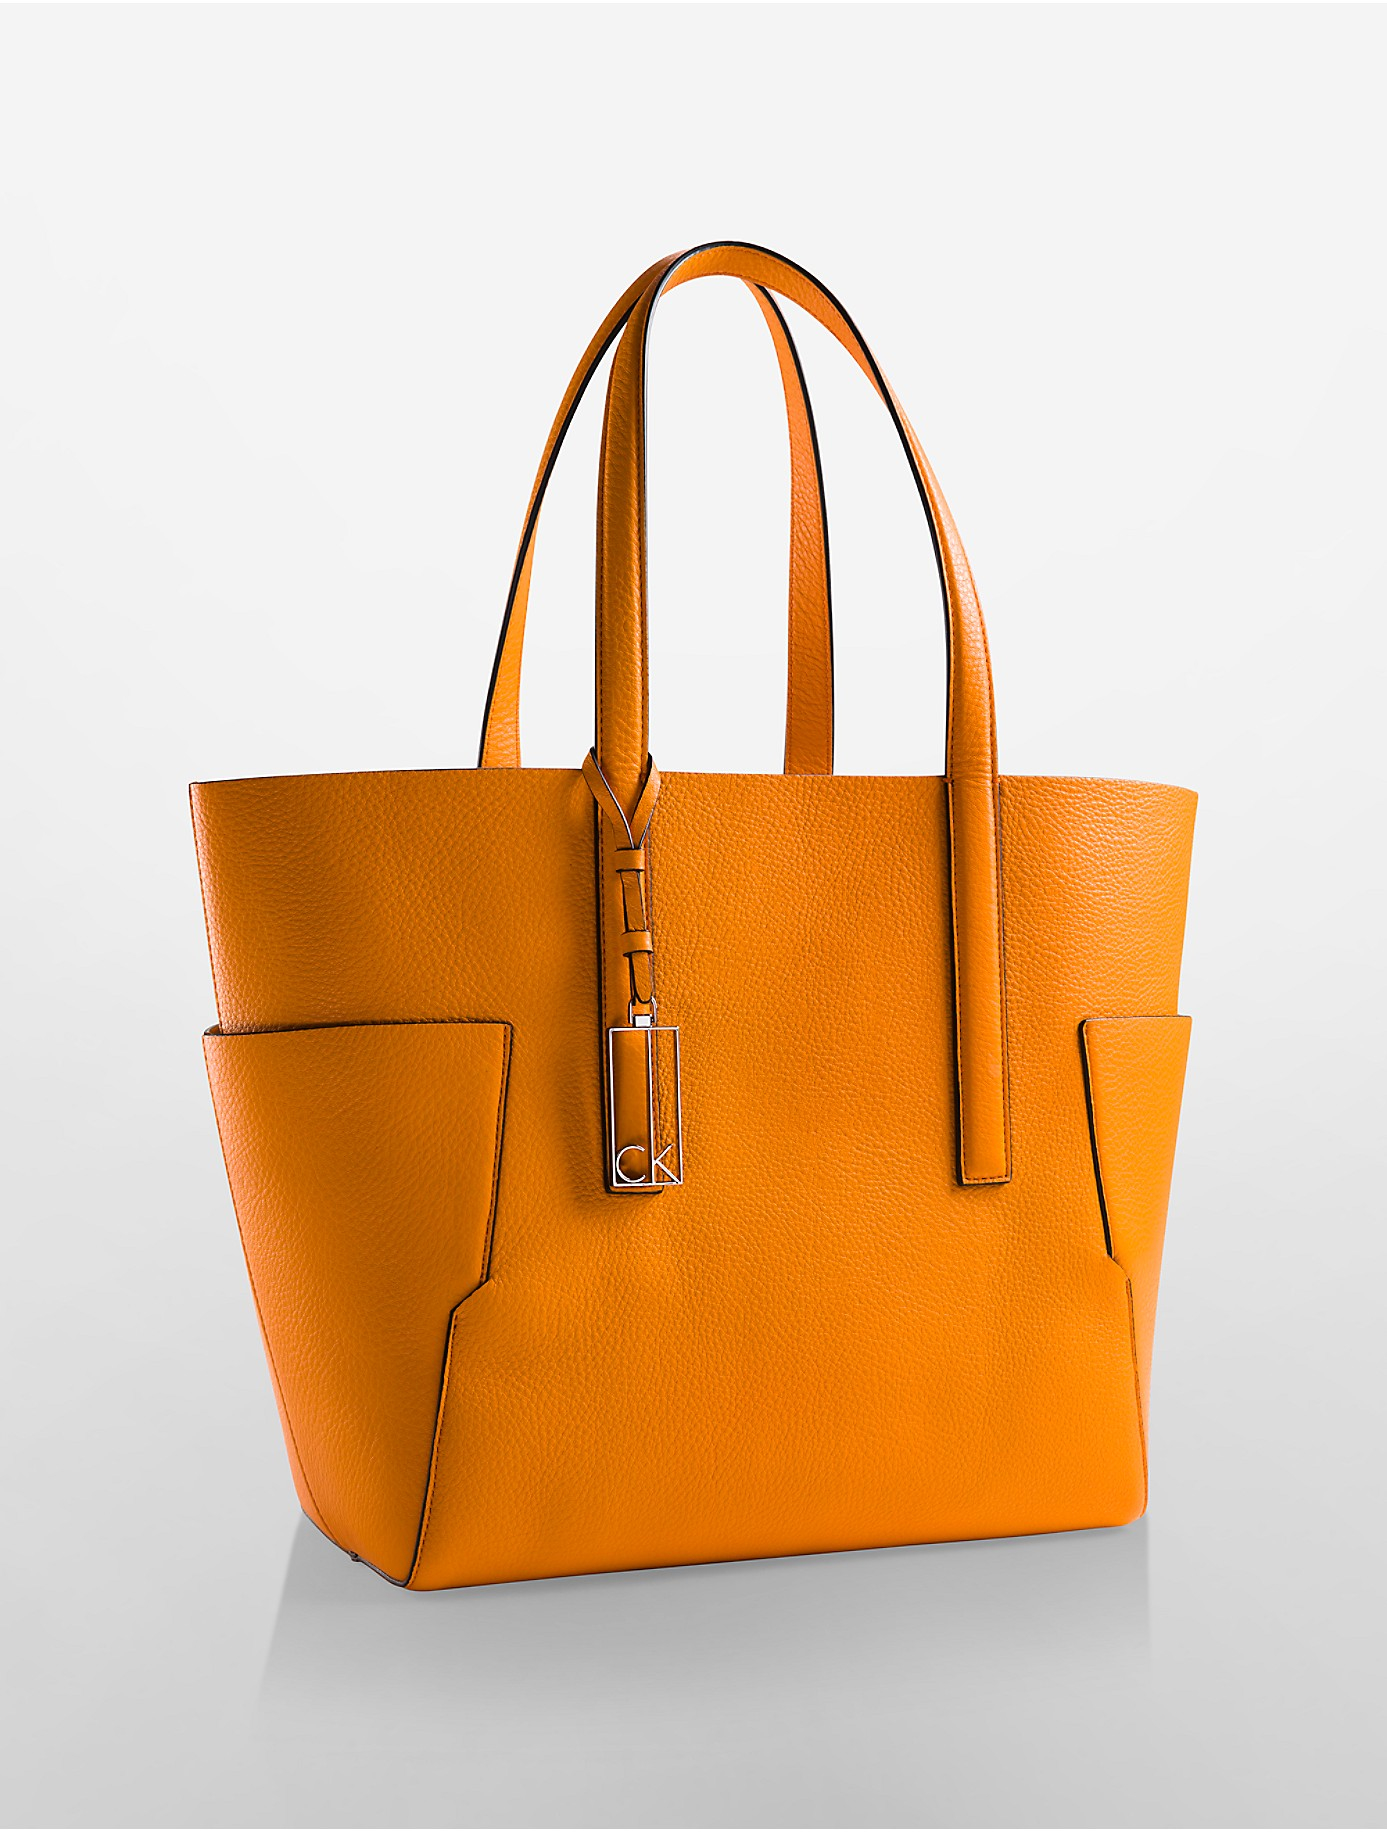 Calvin klein Arslyne Leather Shopper Tote in Orange | Lyst